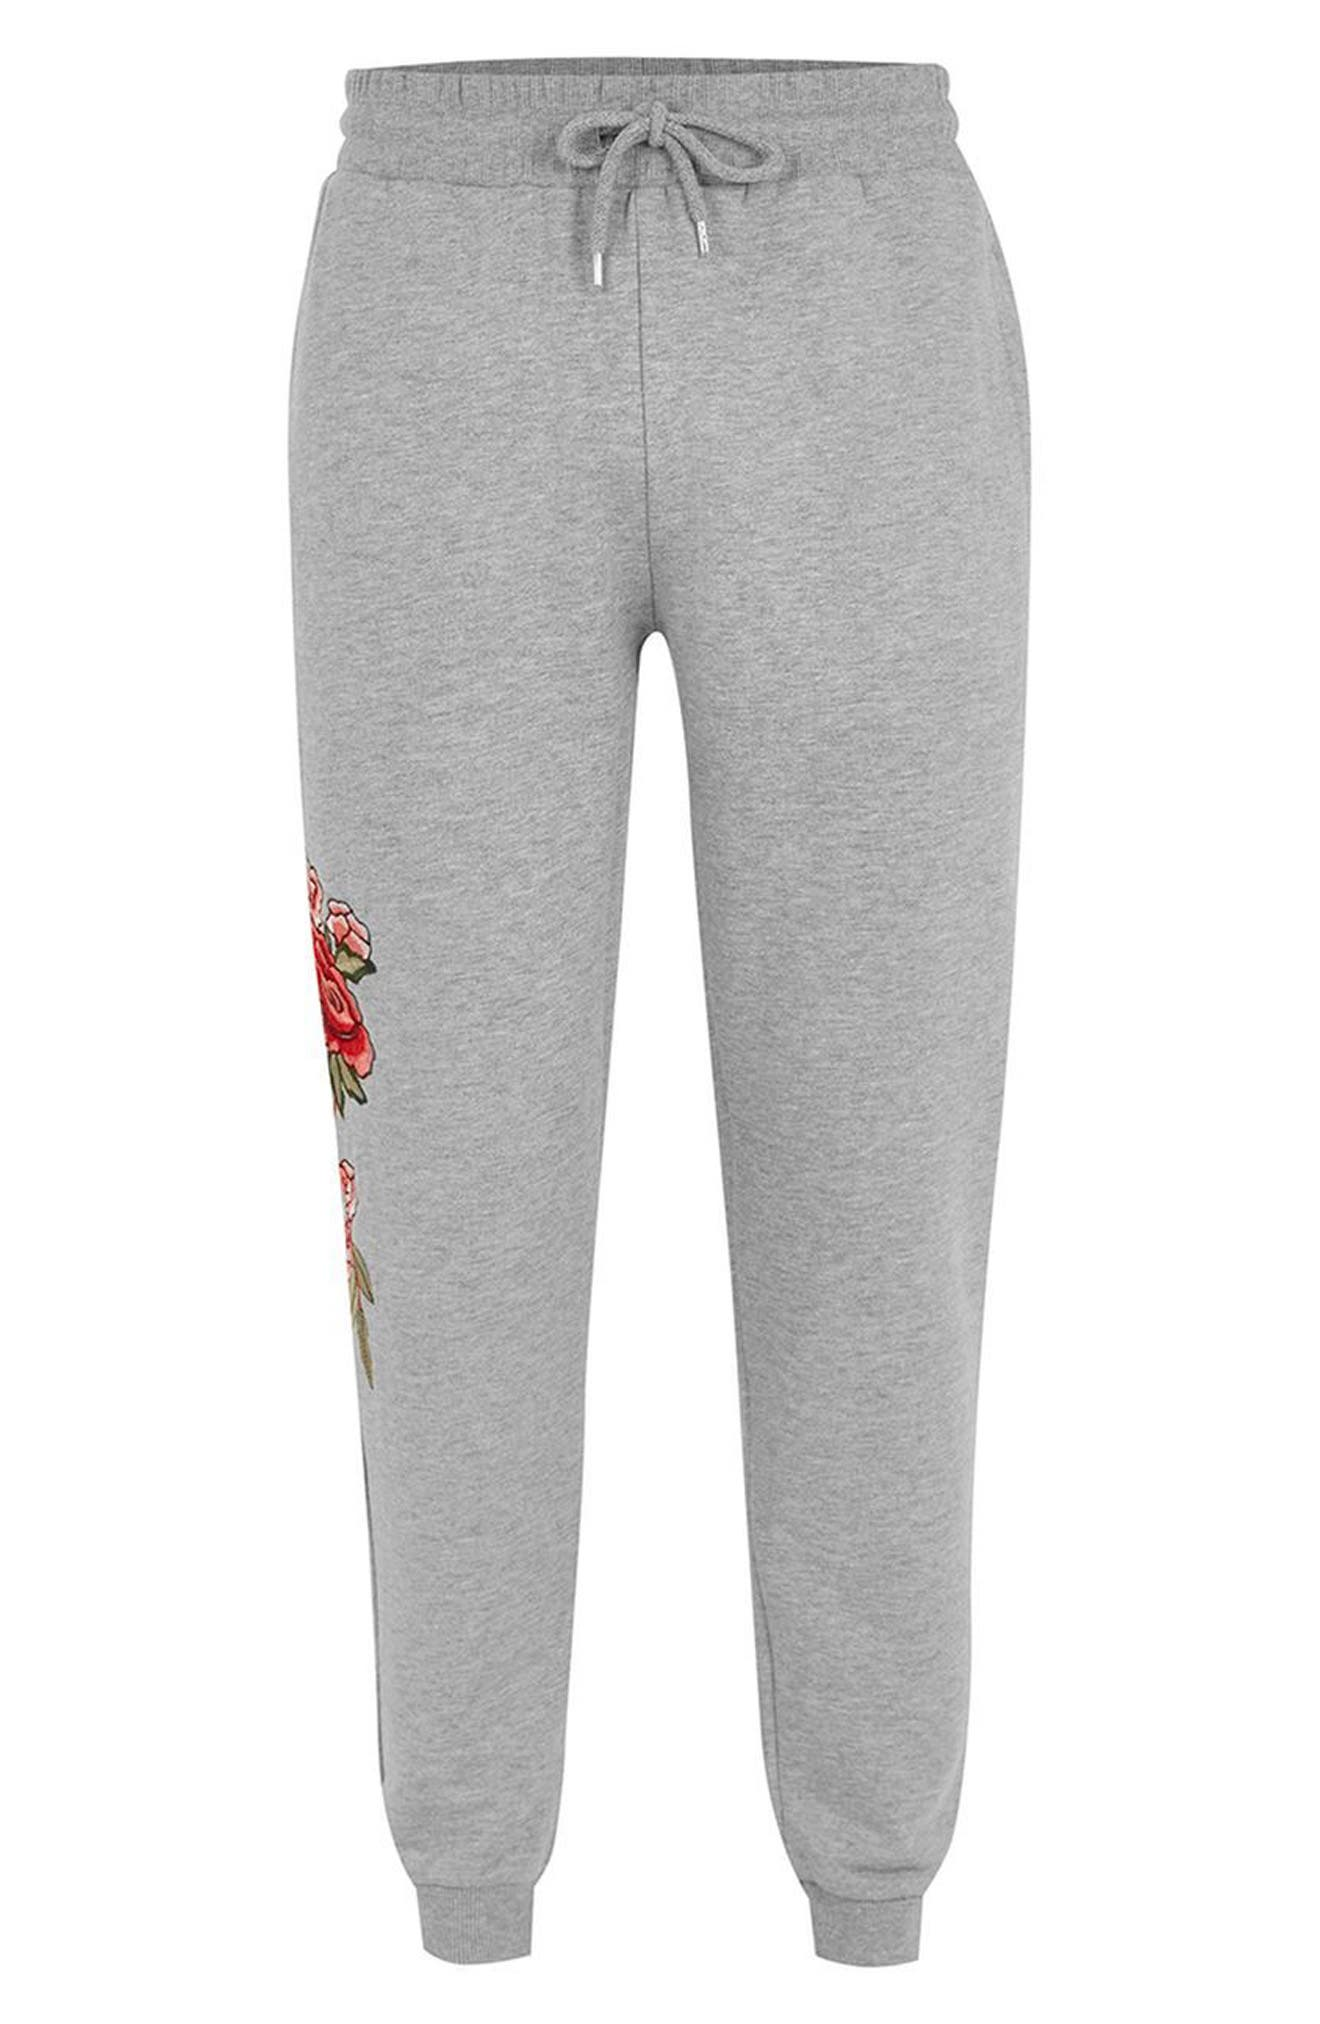 Rose Embroidered Jogger Pants,                             Alternate thumbnail 4, color,                             020